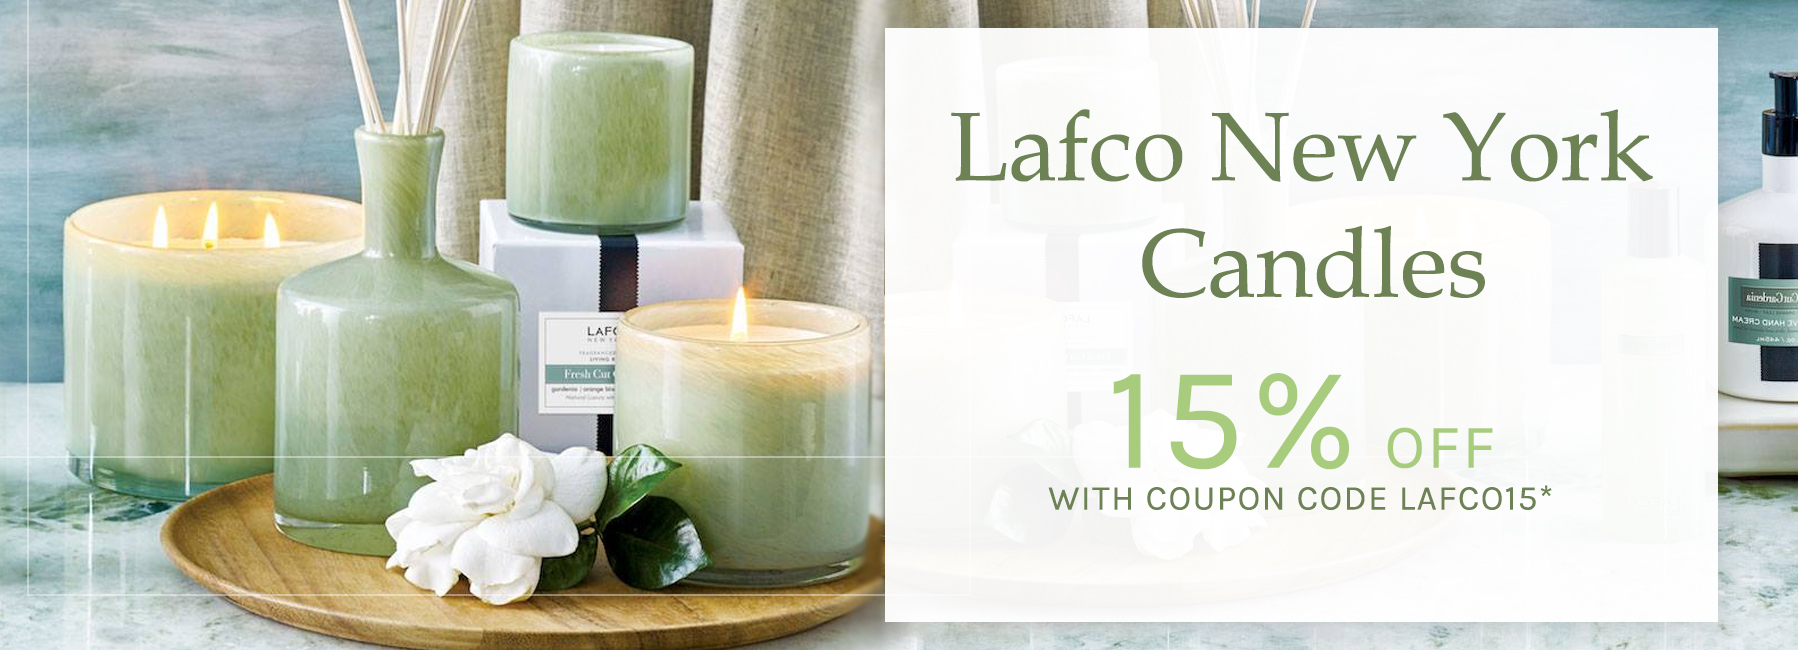 Lafco New York Candles - 15 Percent OFF with Coupon Code LAFCO15